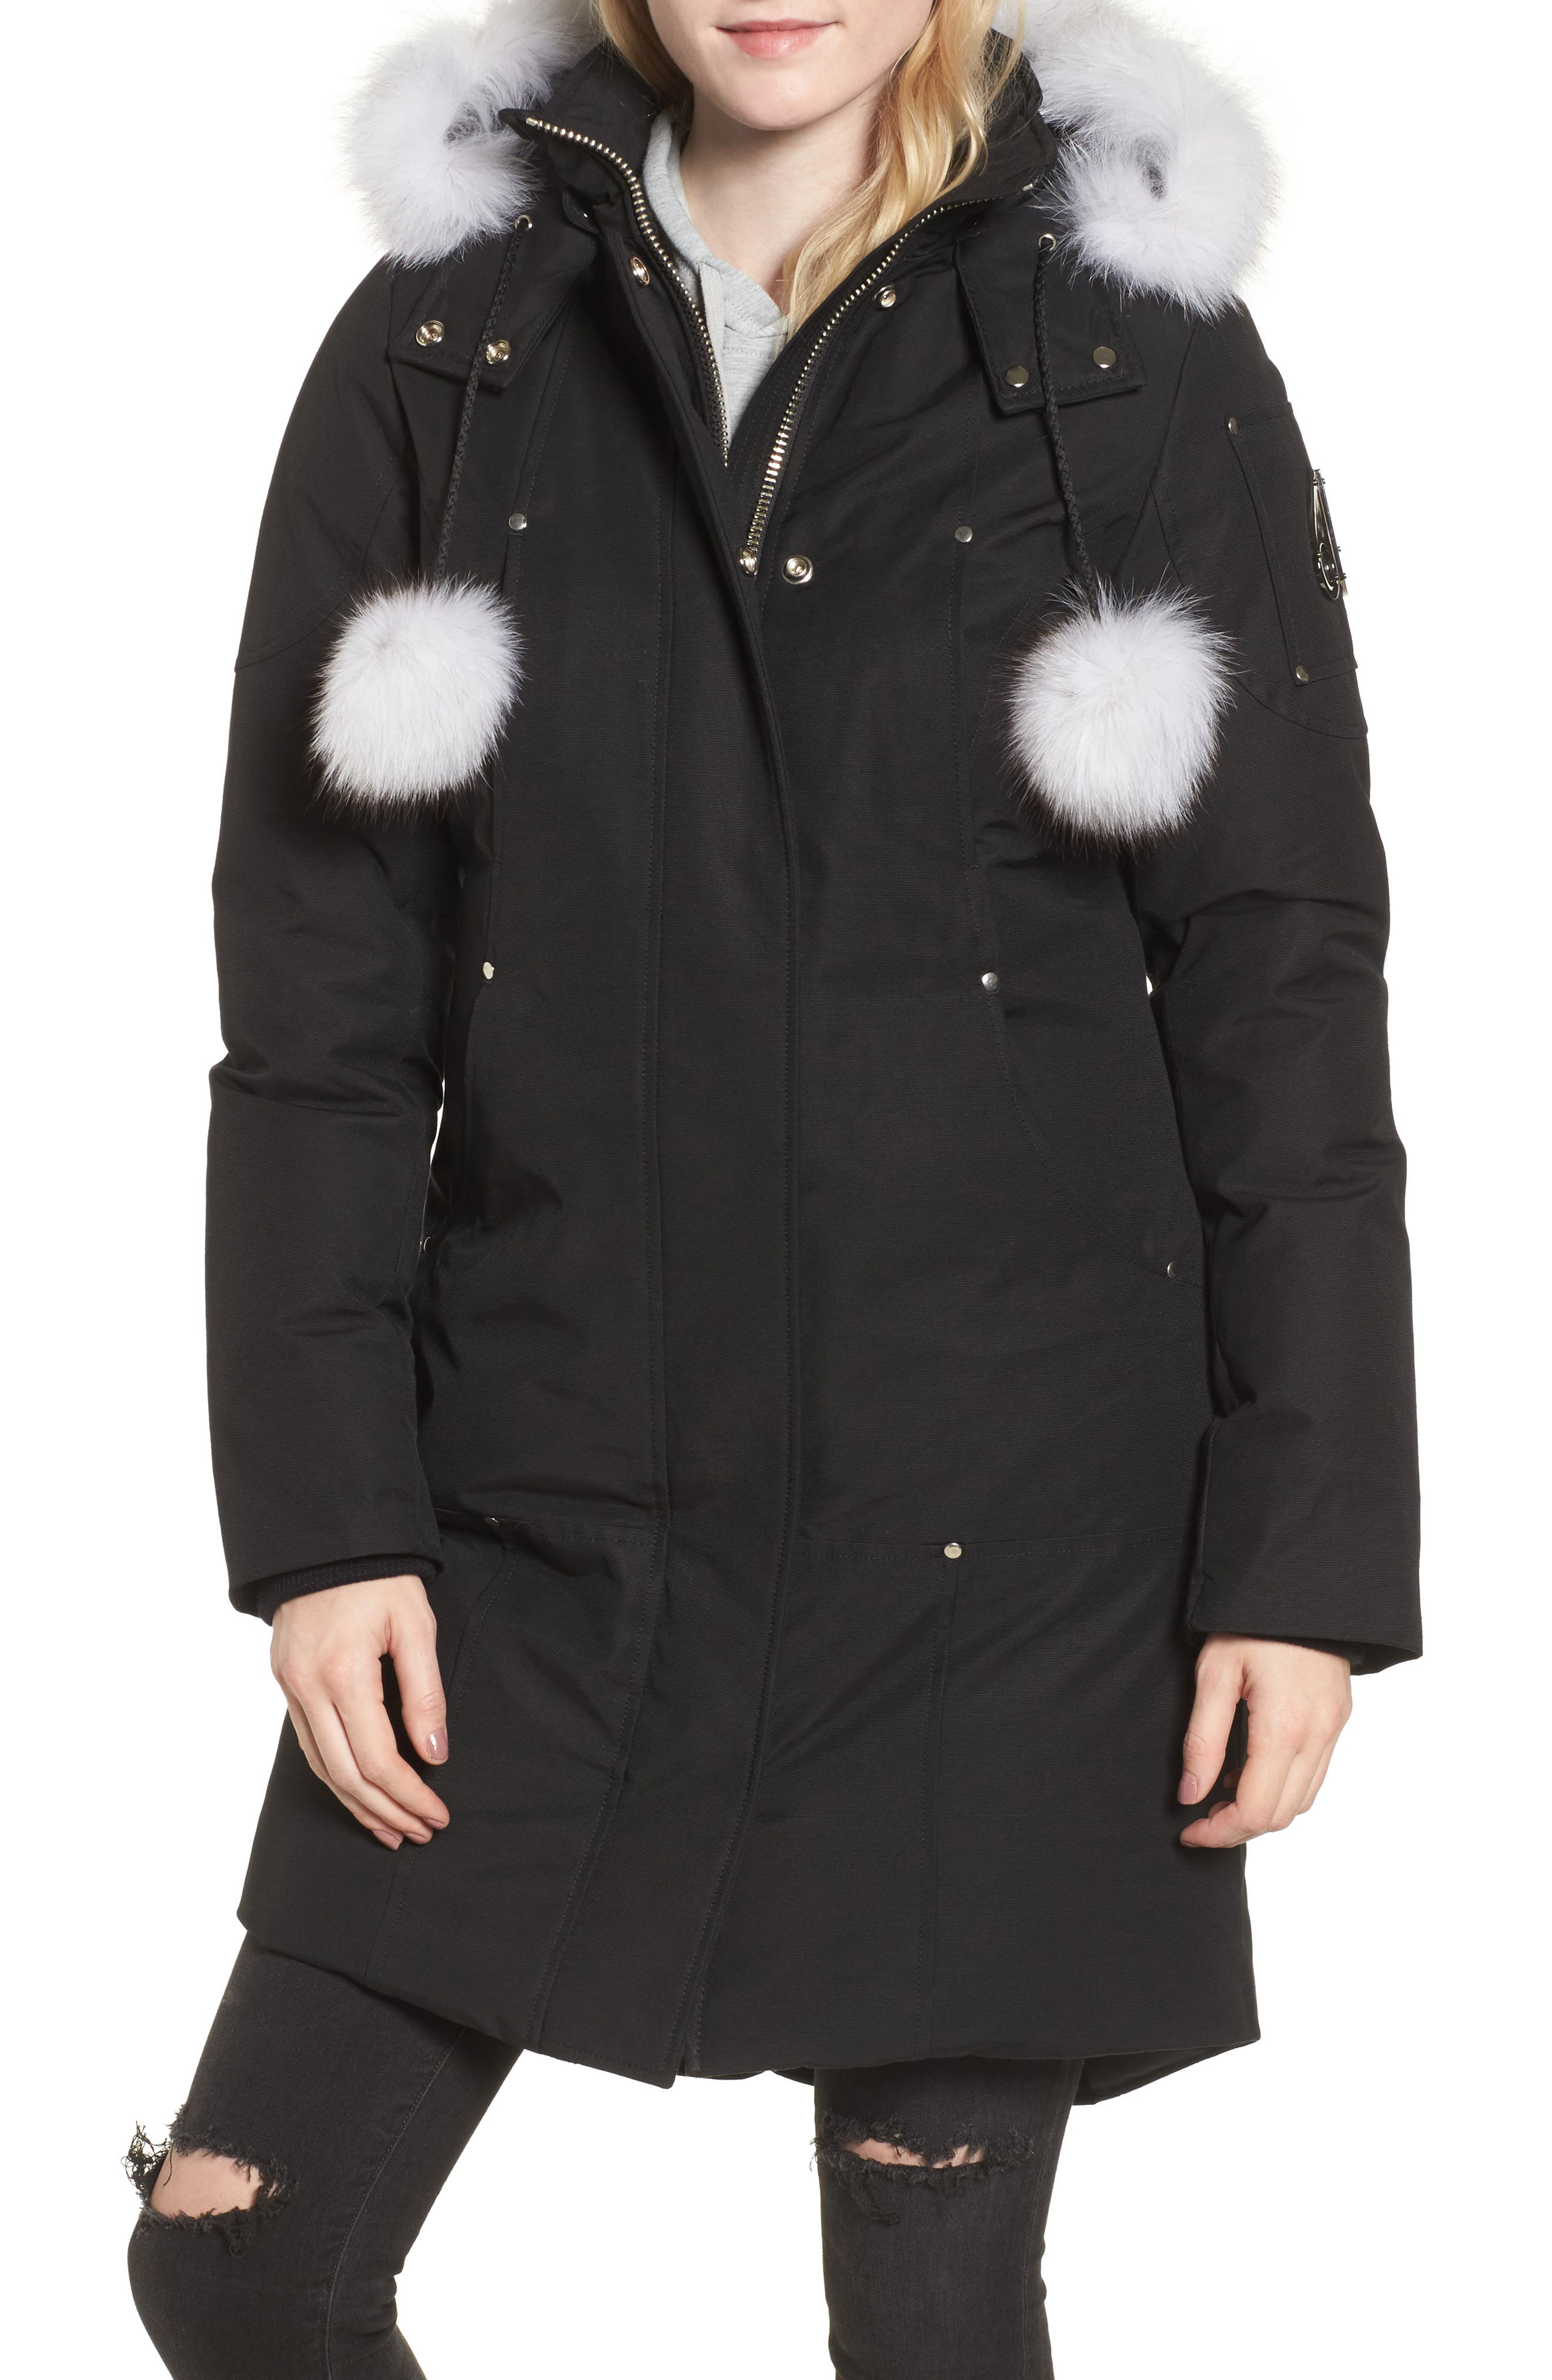 'Stirling' Down Parka with Genuine Fox Fur Trim,                             Alternate thumbnail 2, color,                             BLACK/ WHITE FUR